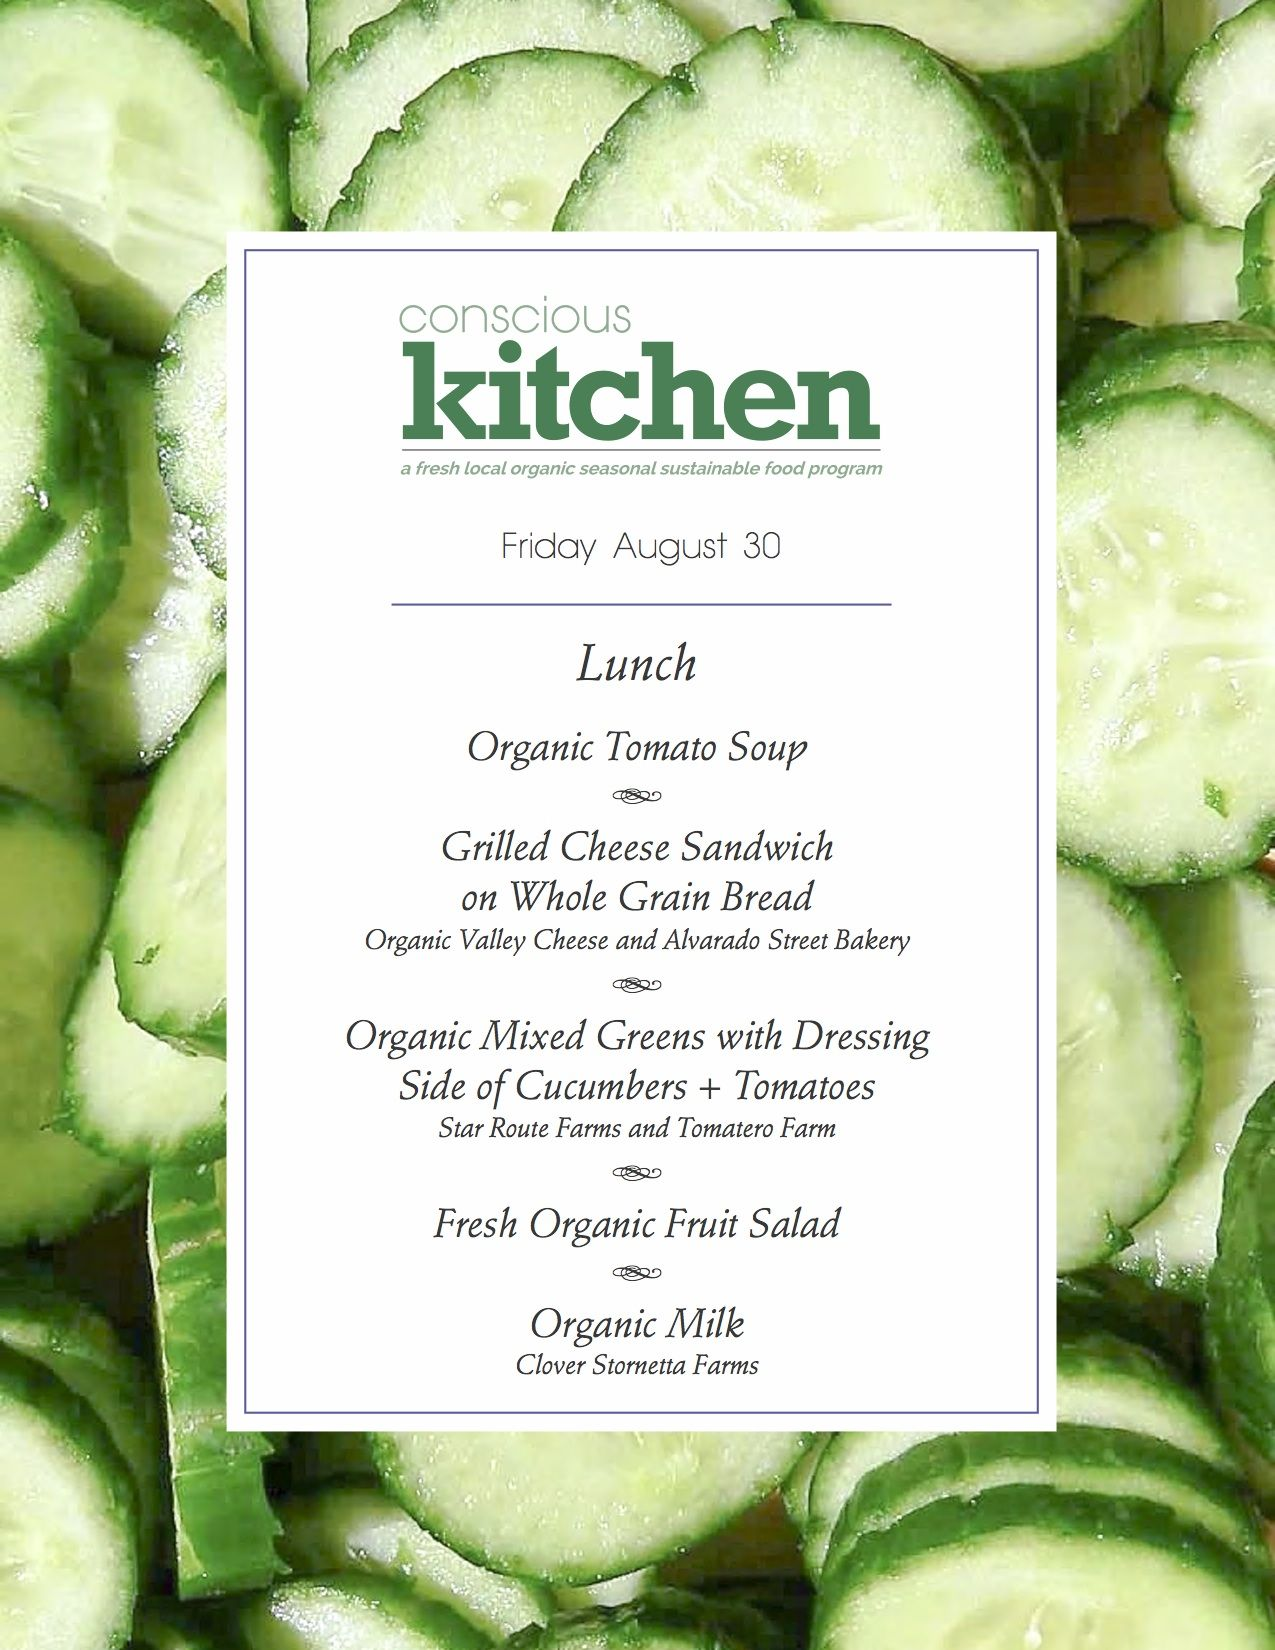 Day 3 Lunch Menu for the Conscious Kitchen at BaysideMLK